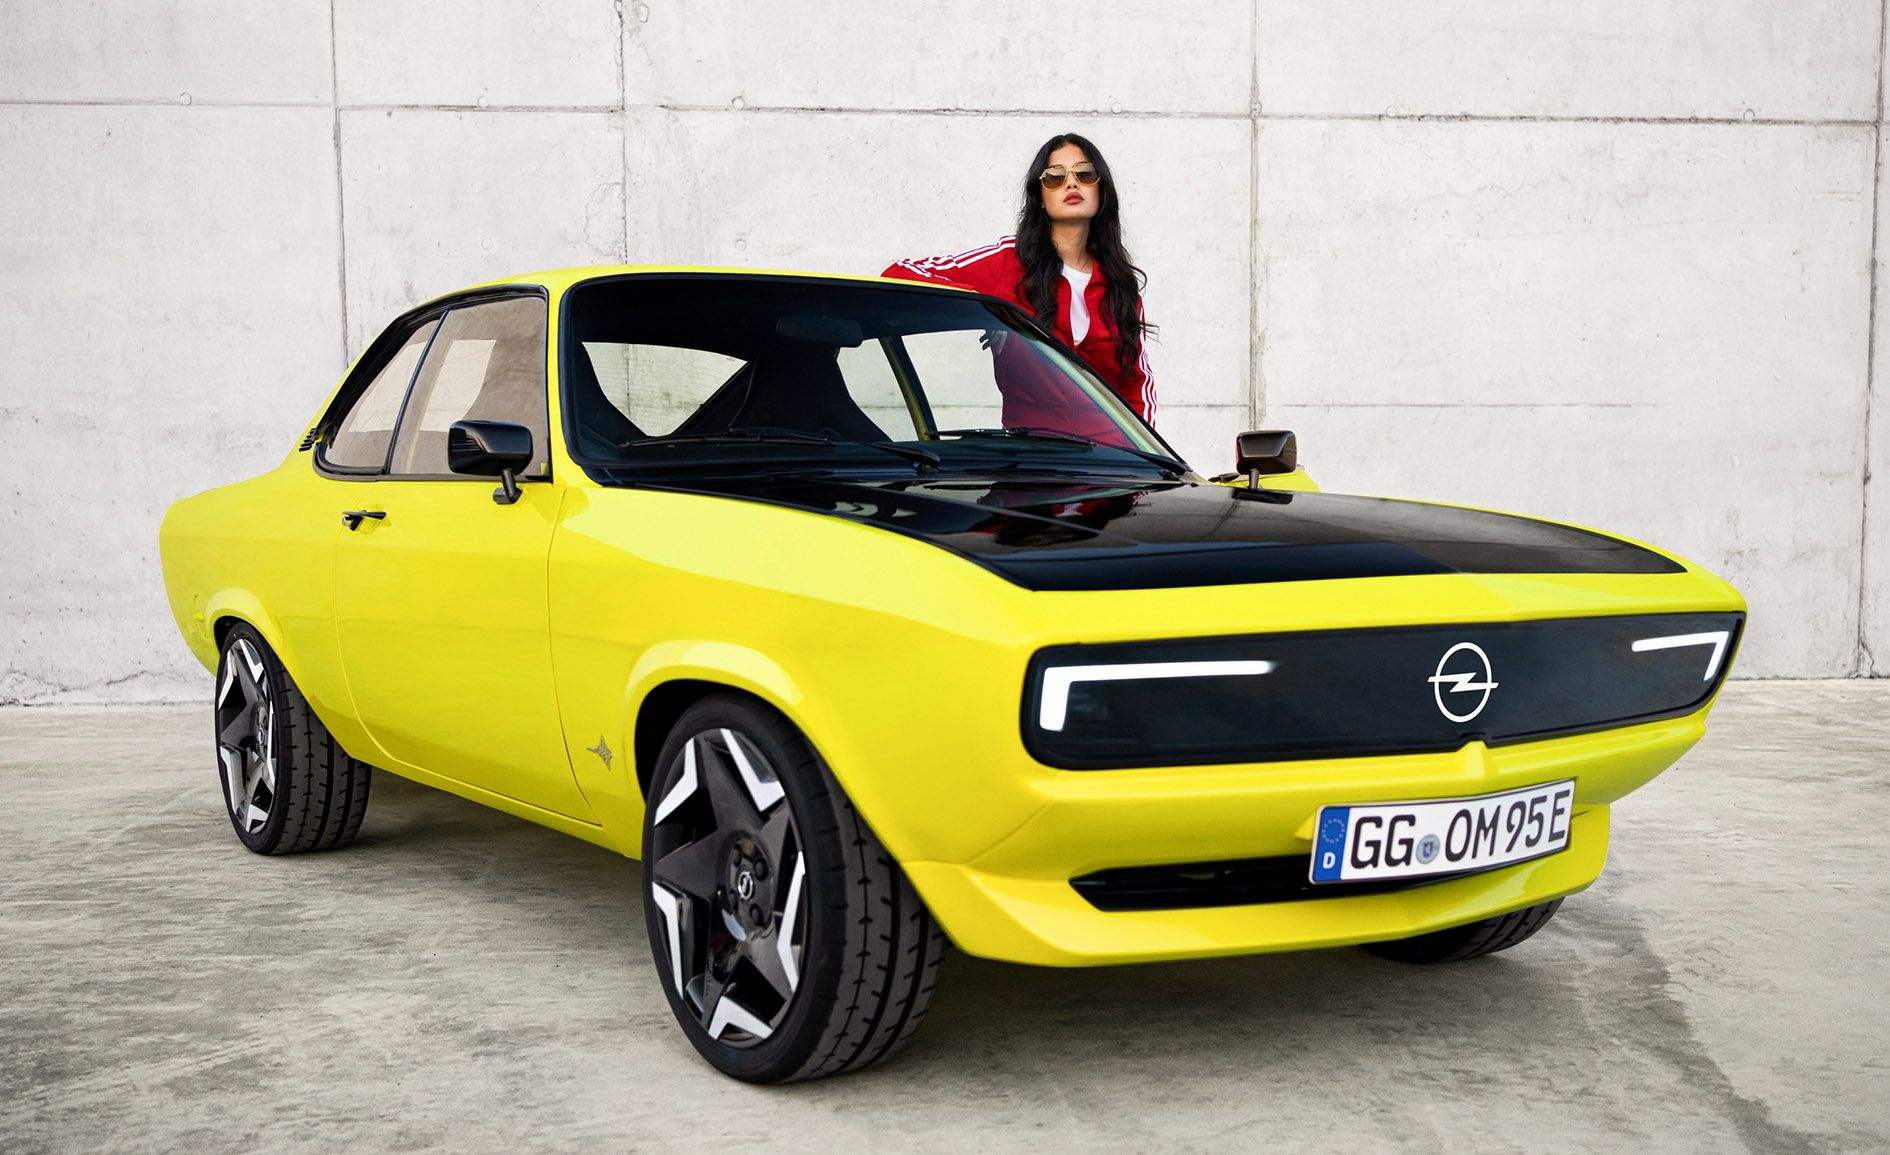 CLASSIC REBORN: A modern-day version of the Opel Mantra